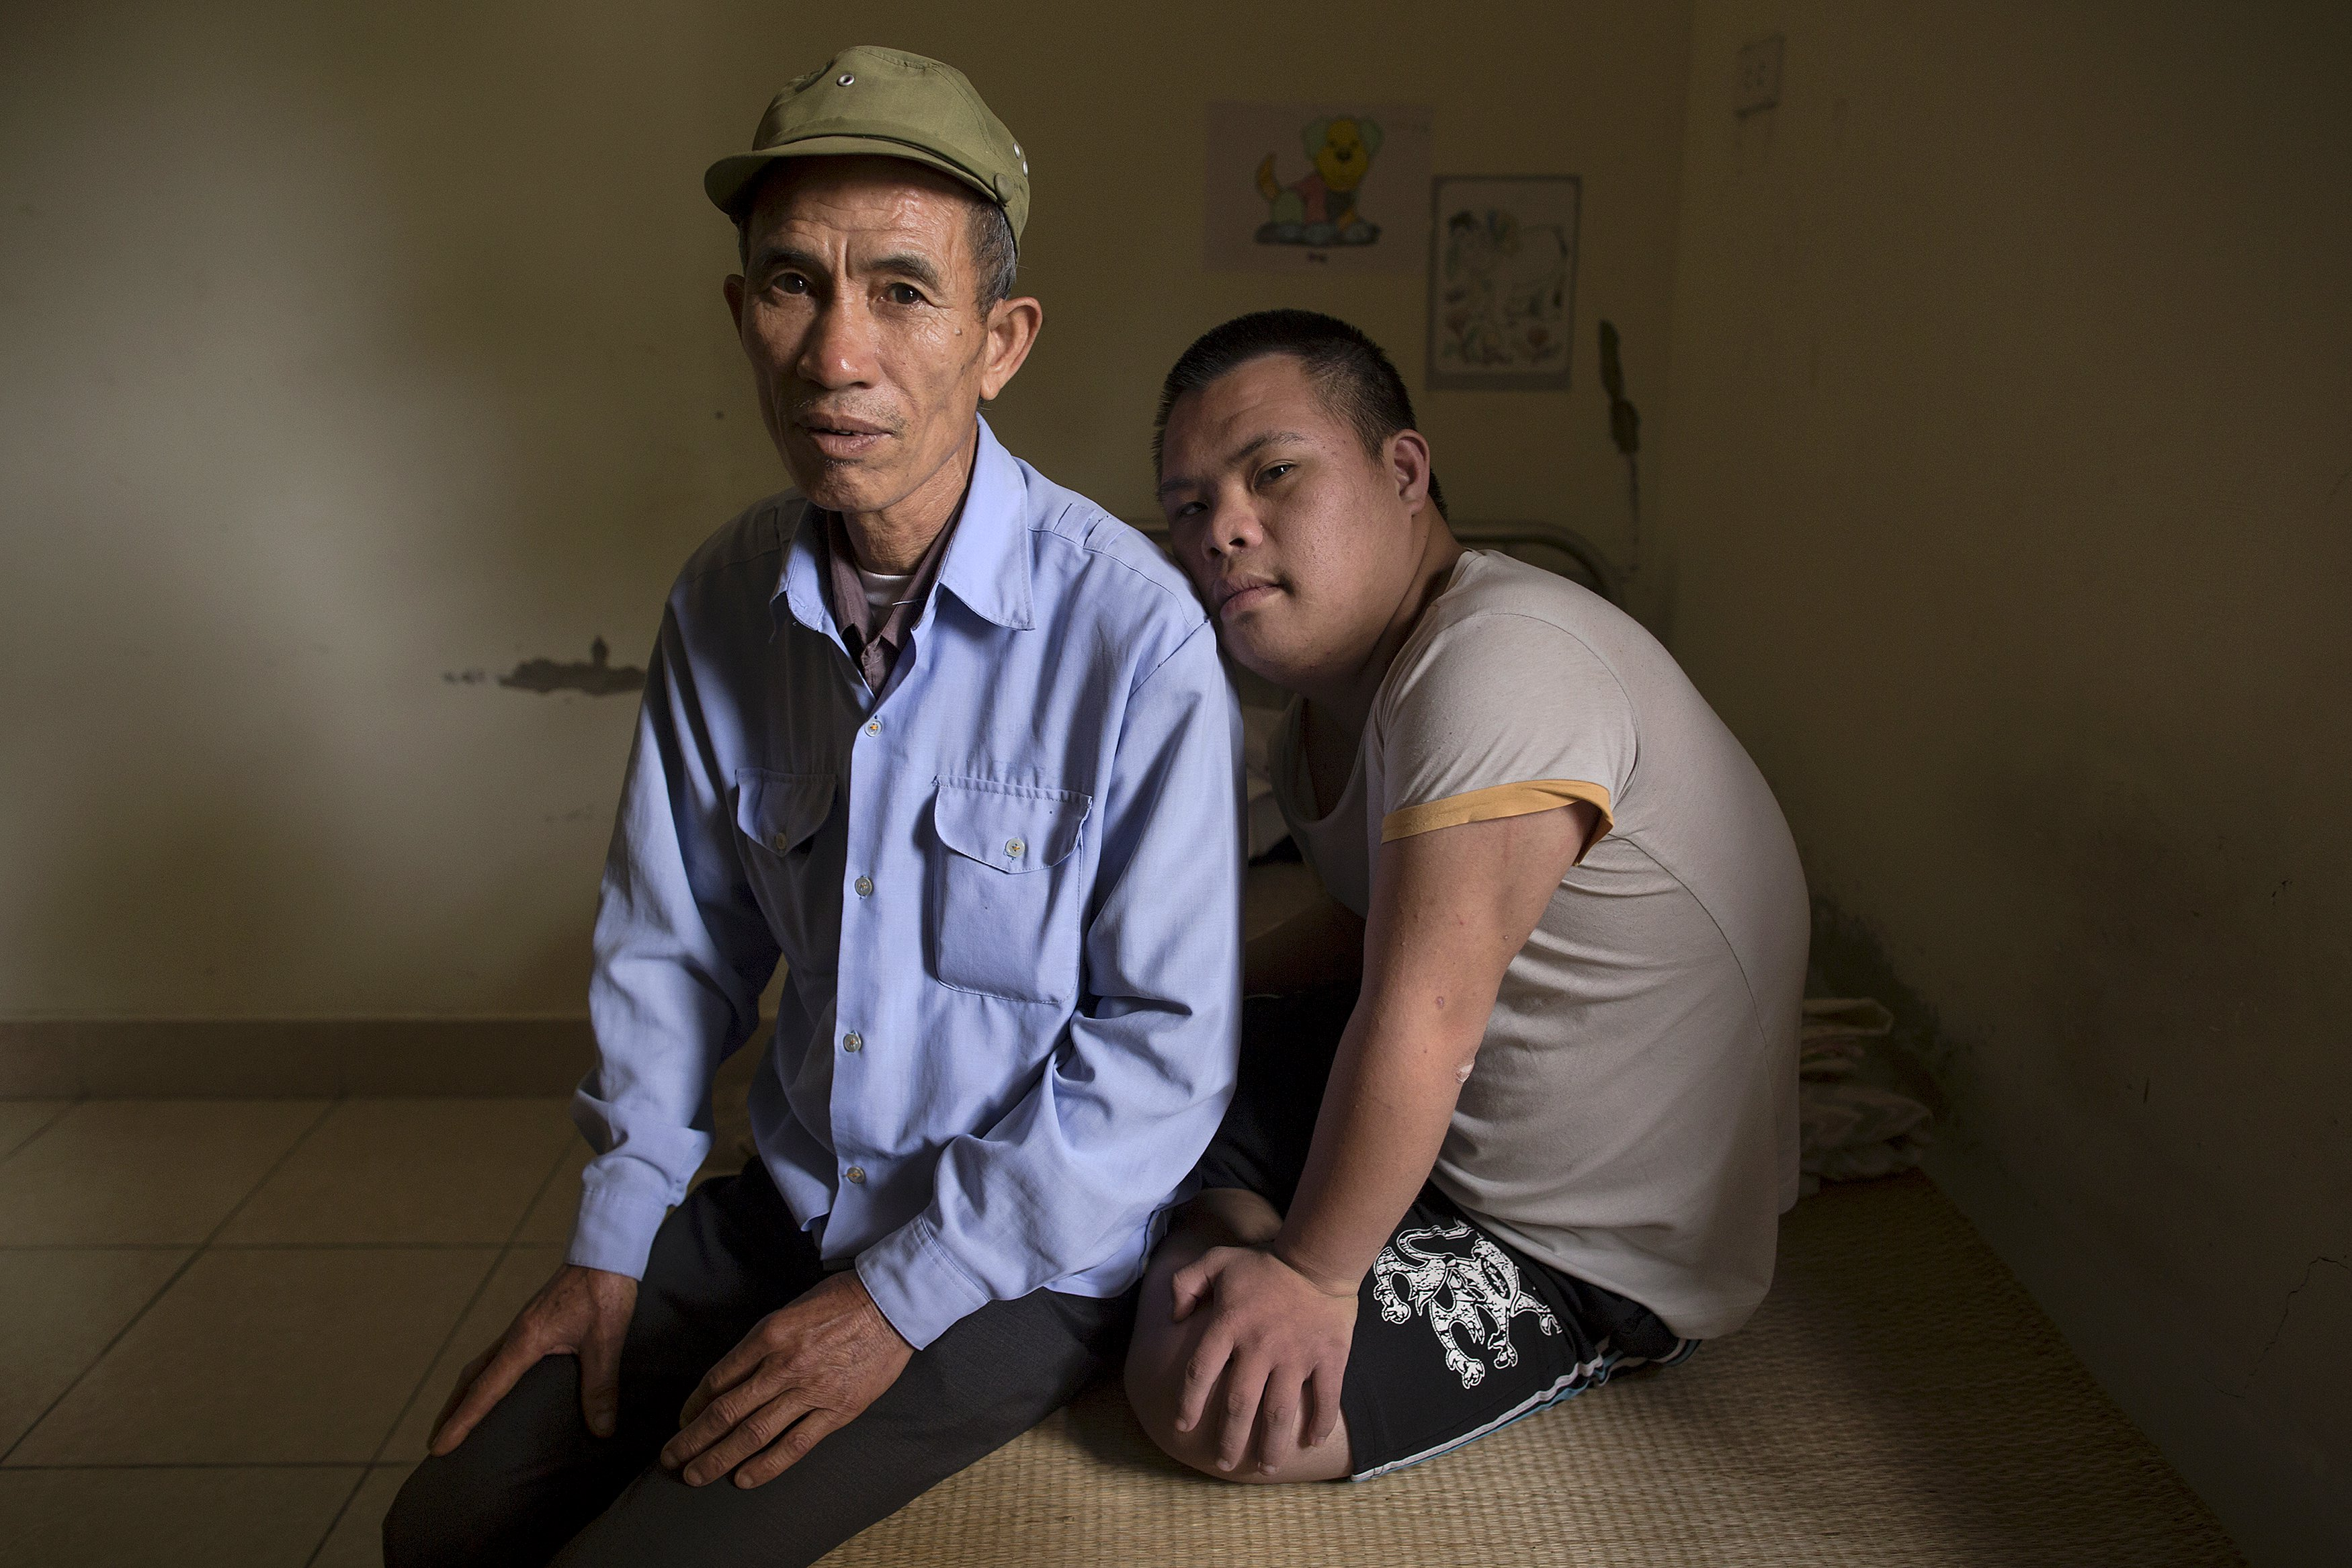 3-year-old former soldier, Nguyen Hong Phuc, sits on the bed with his son Nguyen Dinh Loc, 20, who is recovering from tumour surgery at Friendship village, a hospice for Agent Orange victims, outside Hanoi April 8, 2015. Nguyen Dinh Loc has serious mental and physical problems that his family and doctors link to his father's exposure to Agent Orange. His father joined the military after the U.S. army stopped using Agent Orange in 1971, but lived in areas heavily contaminated by it, including near Danang airport, where the chemical defoliant was stored.